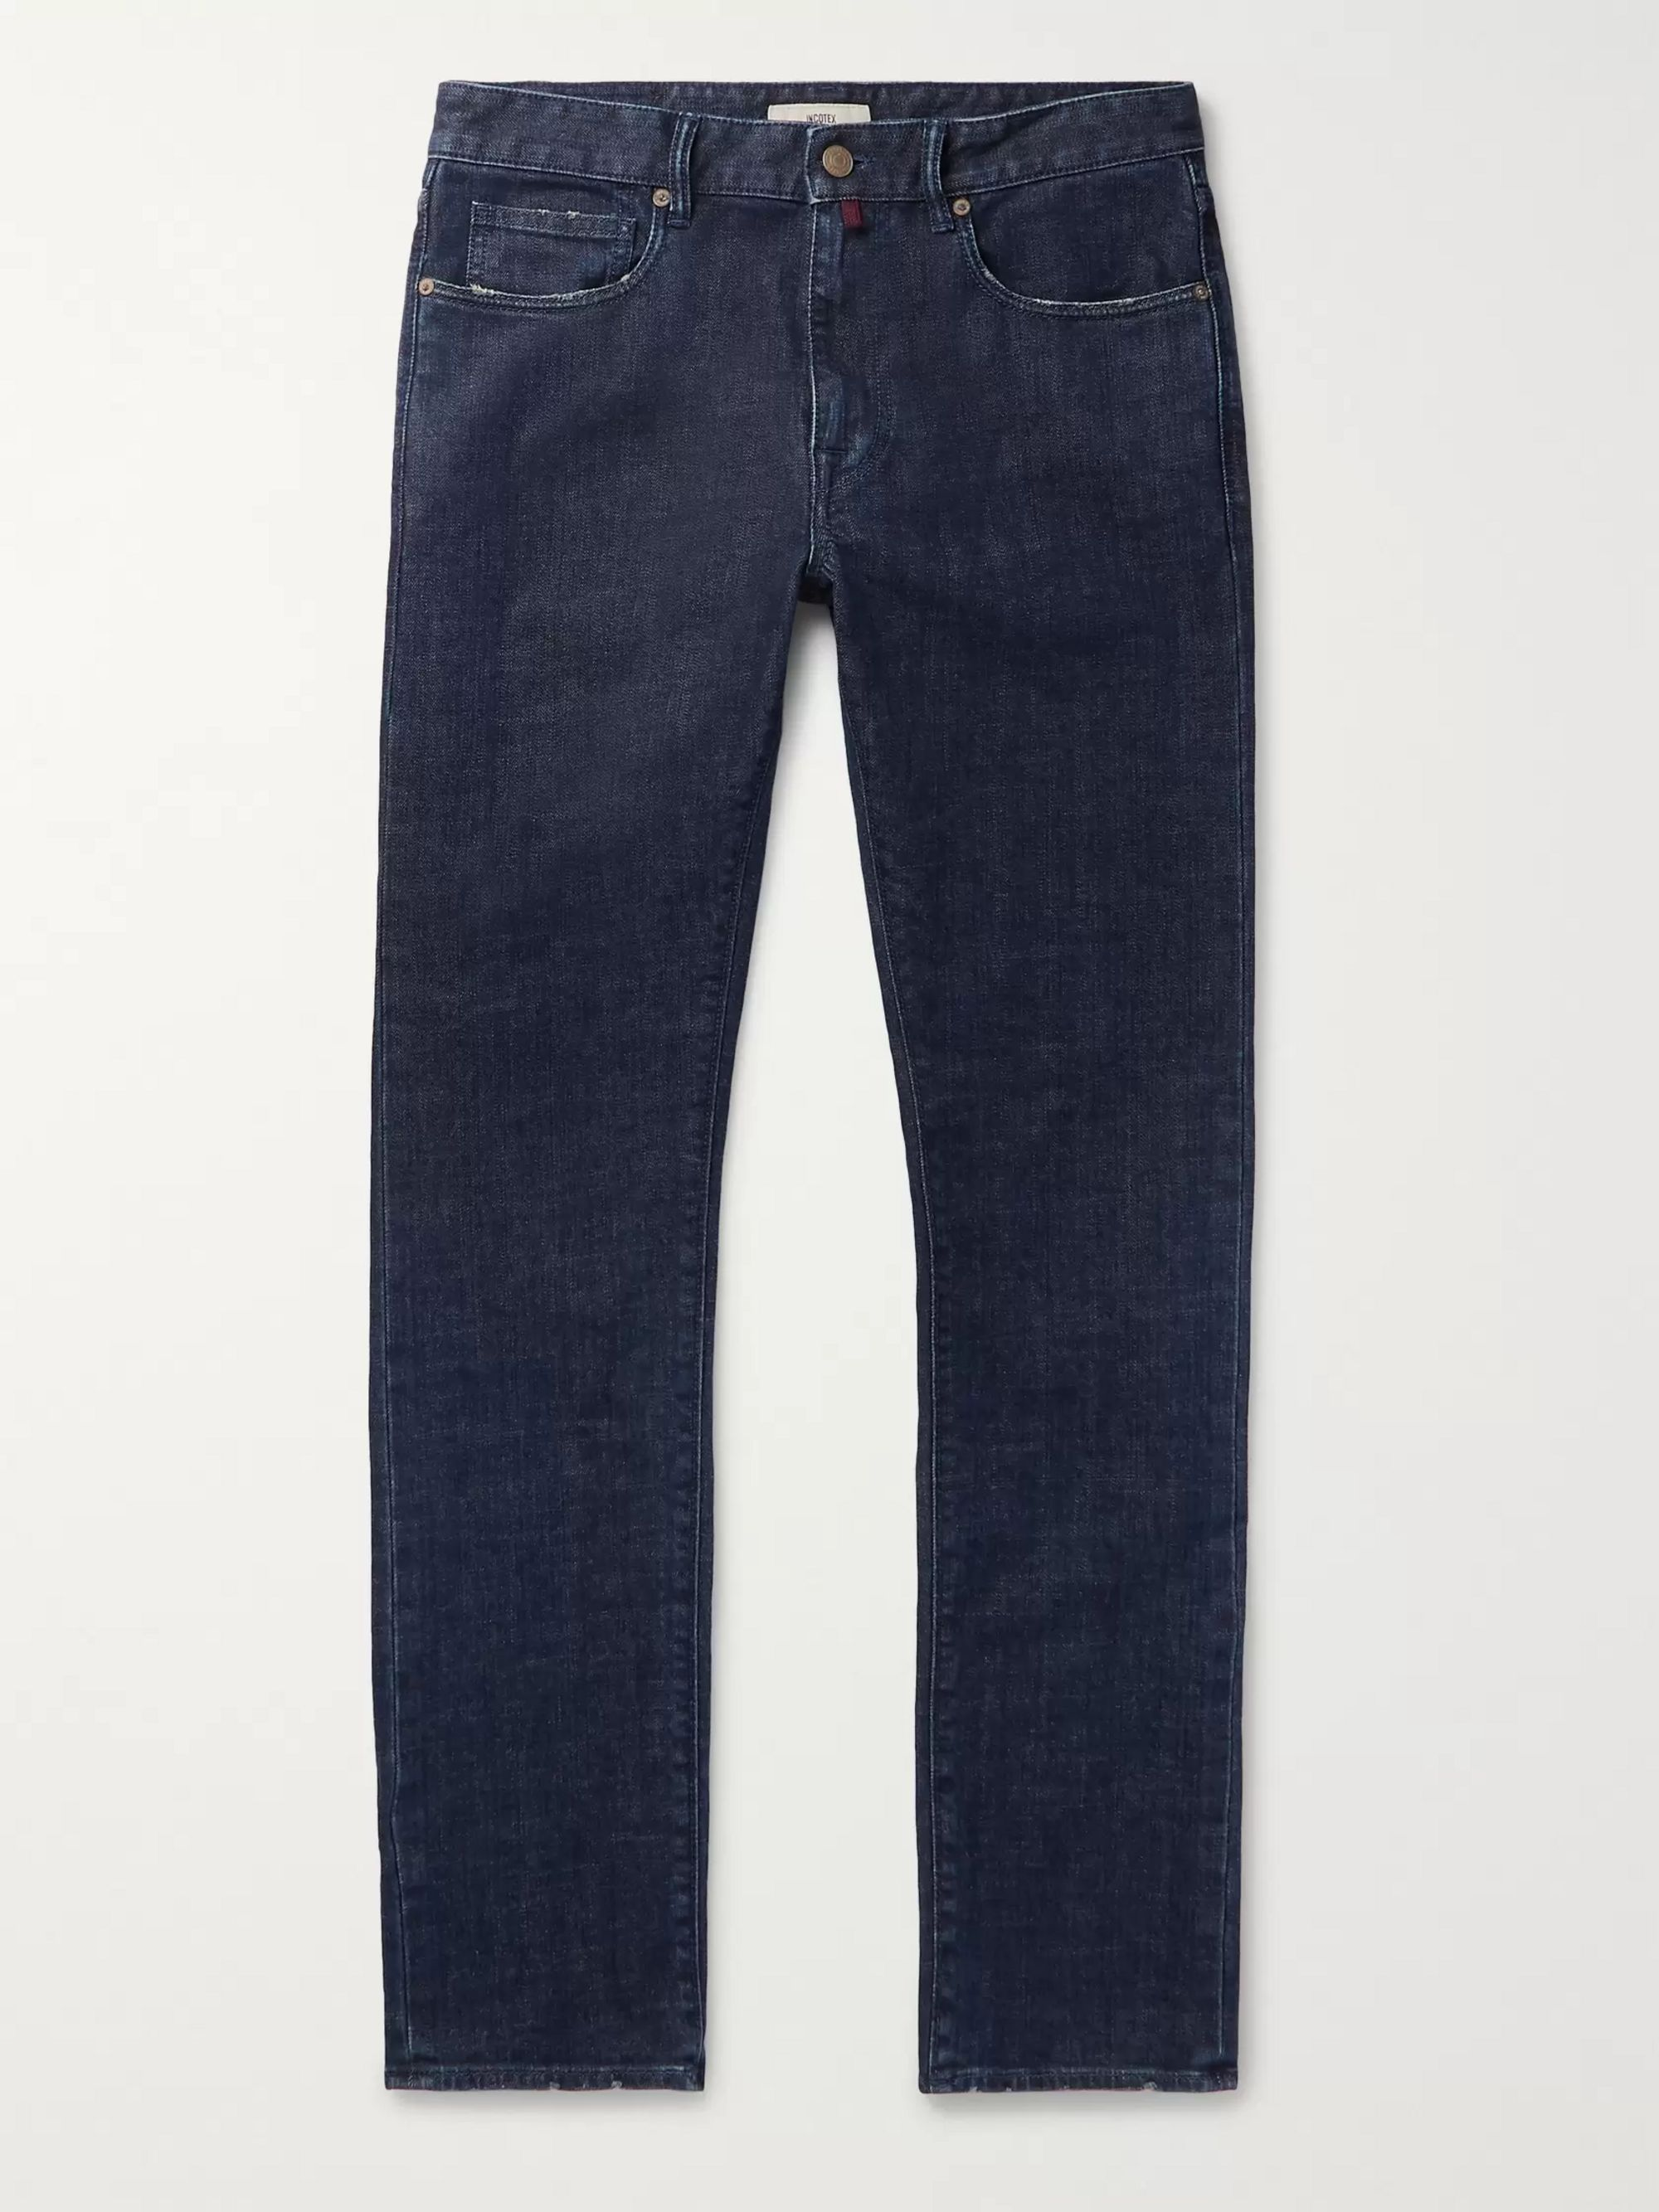 Incotex Slim-Fit Distressed Denim Jeans